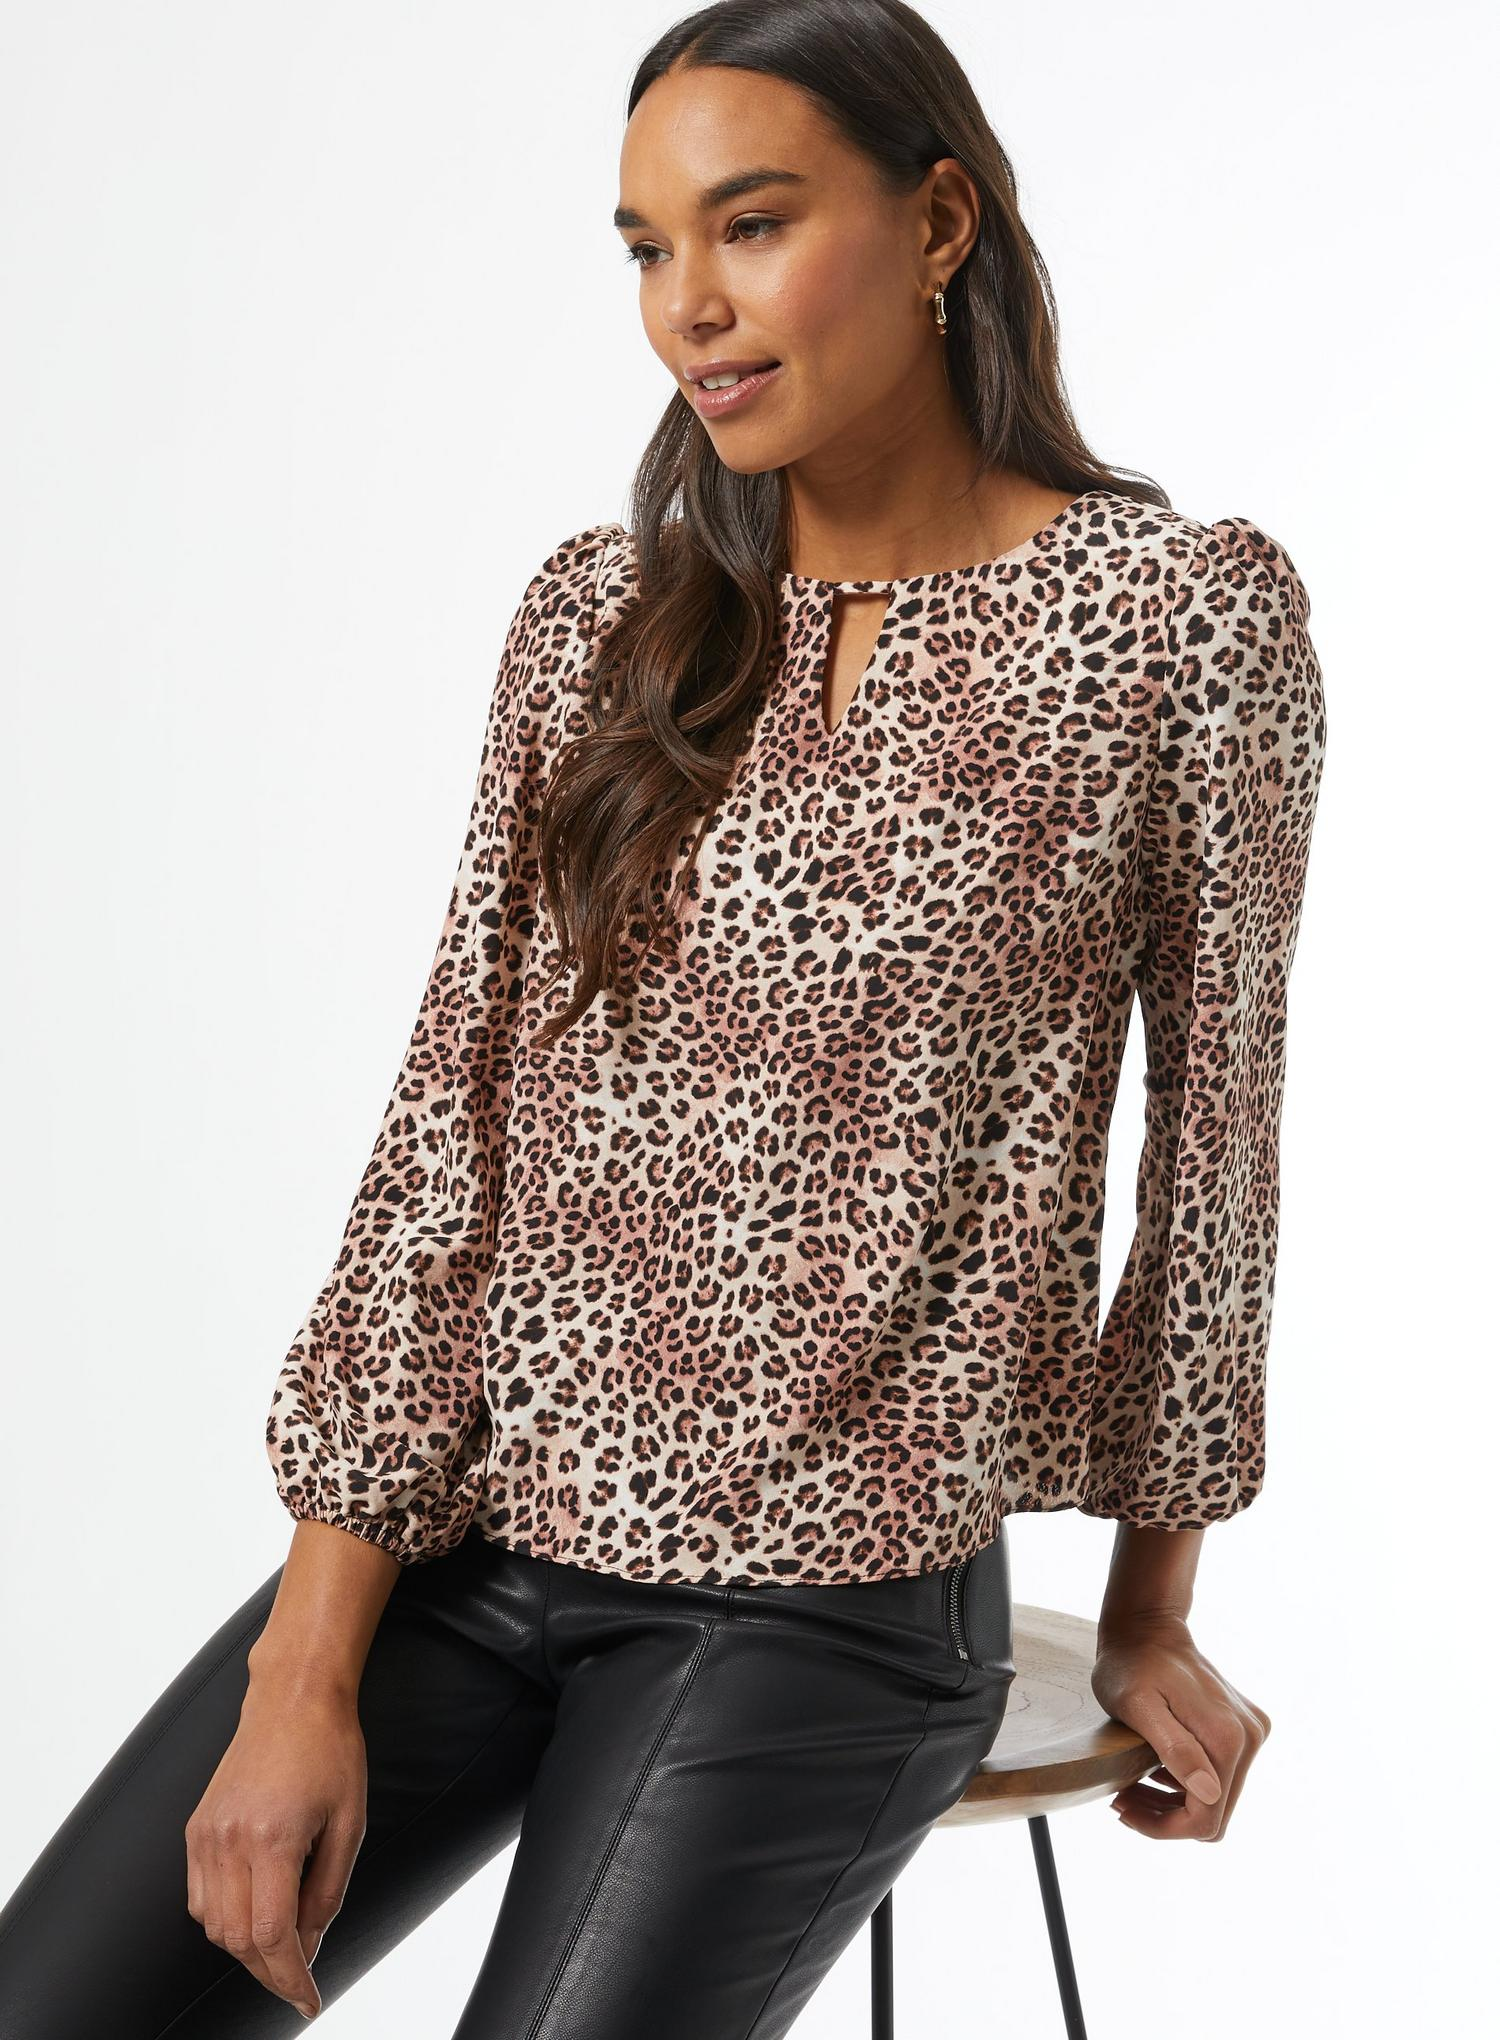 123 White Leopard Print Blouse image number 1